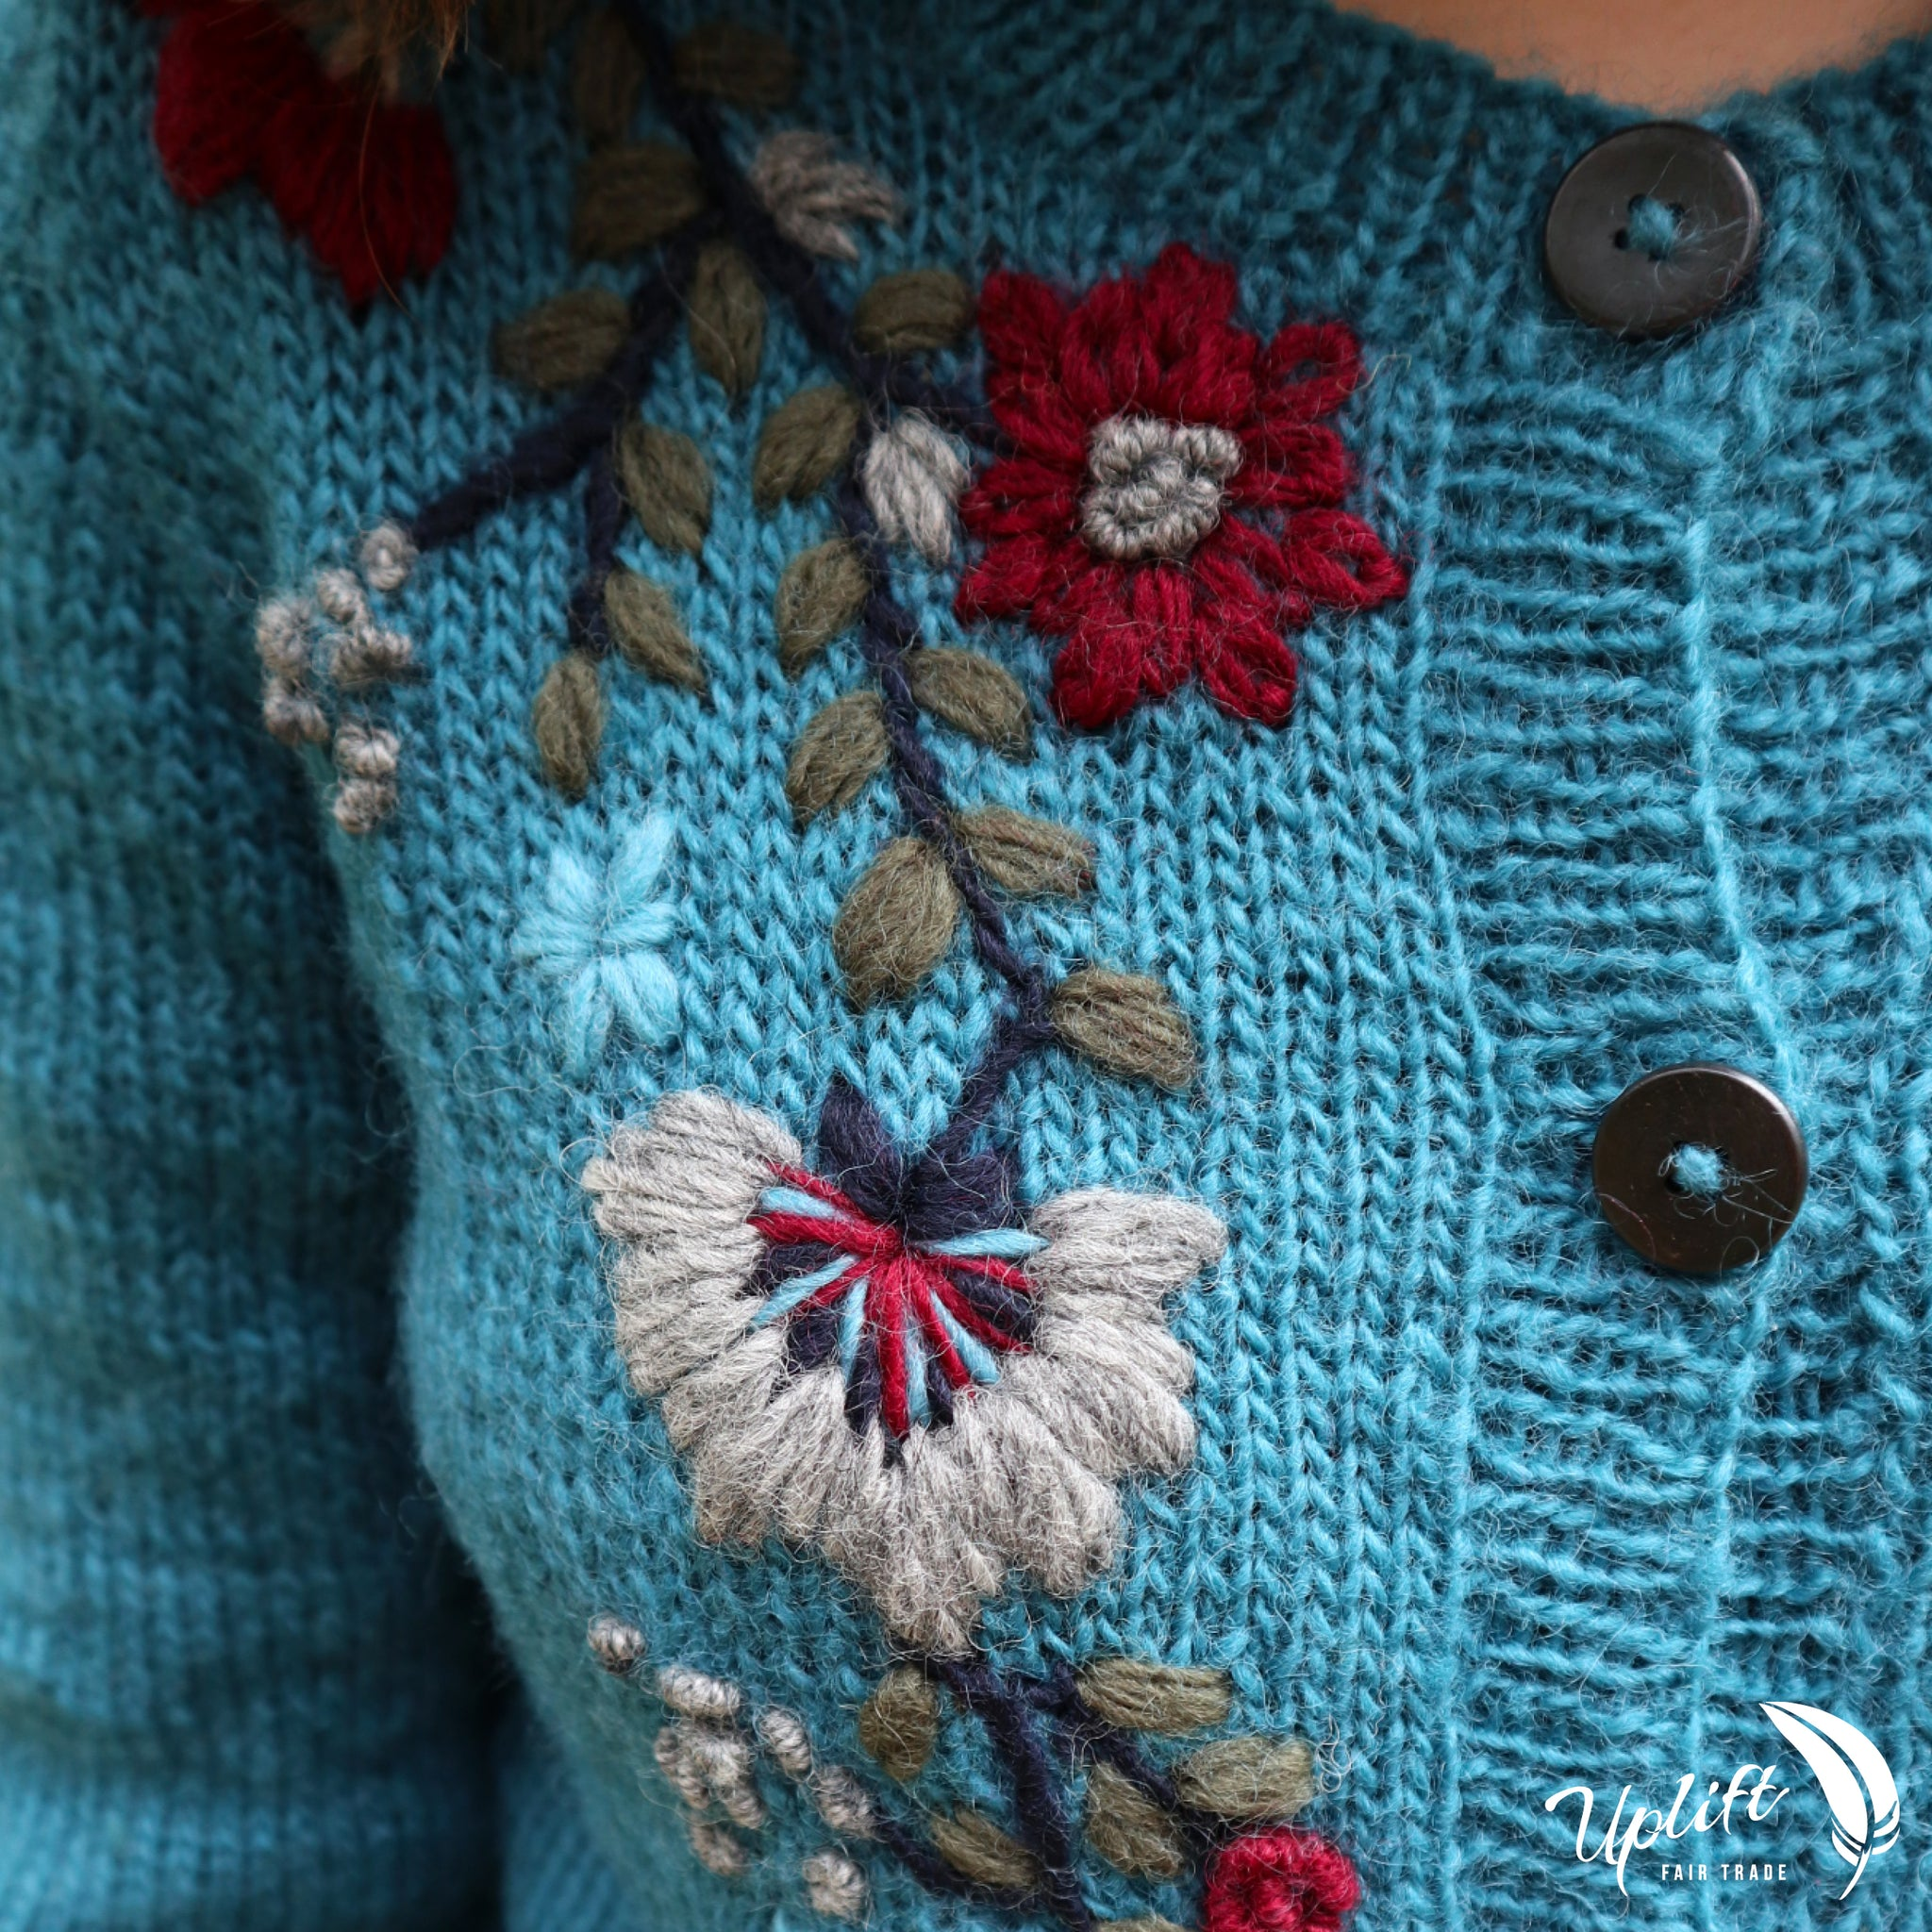 Fair Trade Ethical Women's Woollen Cardigan with Embroidery